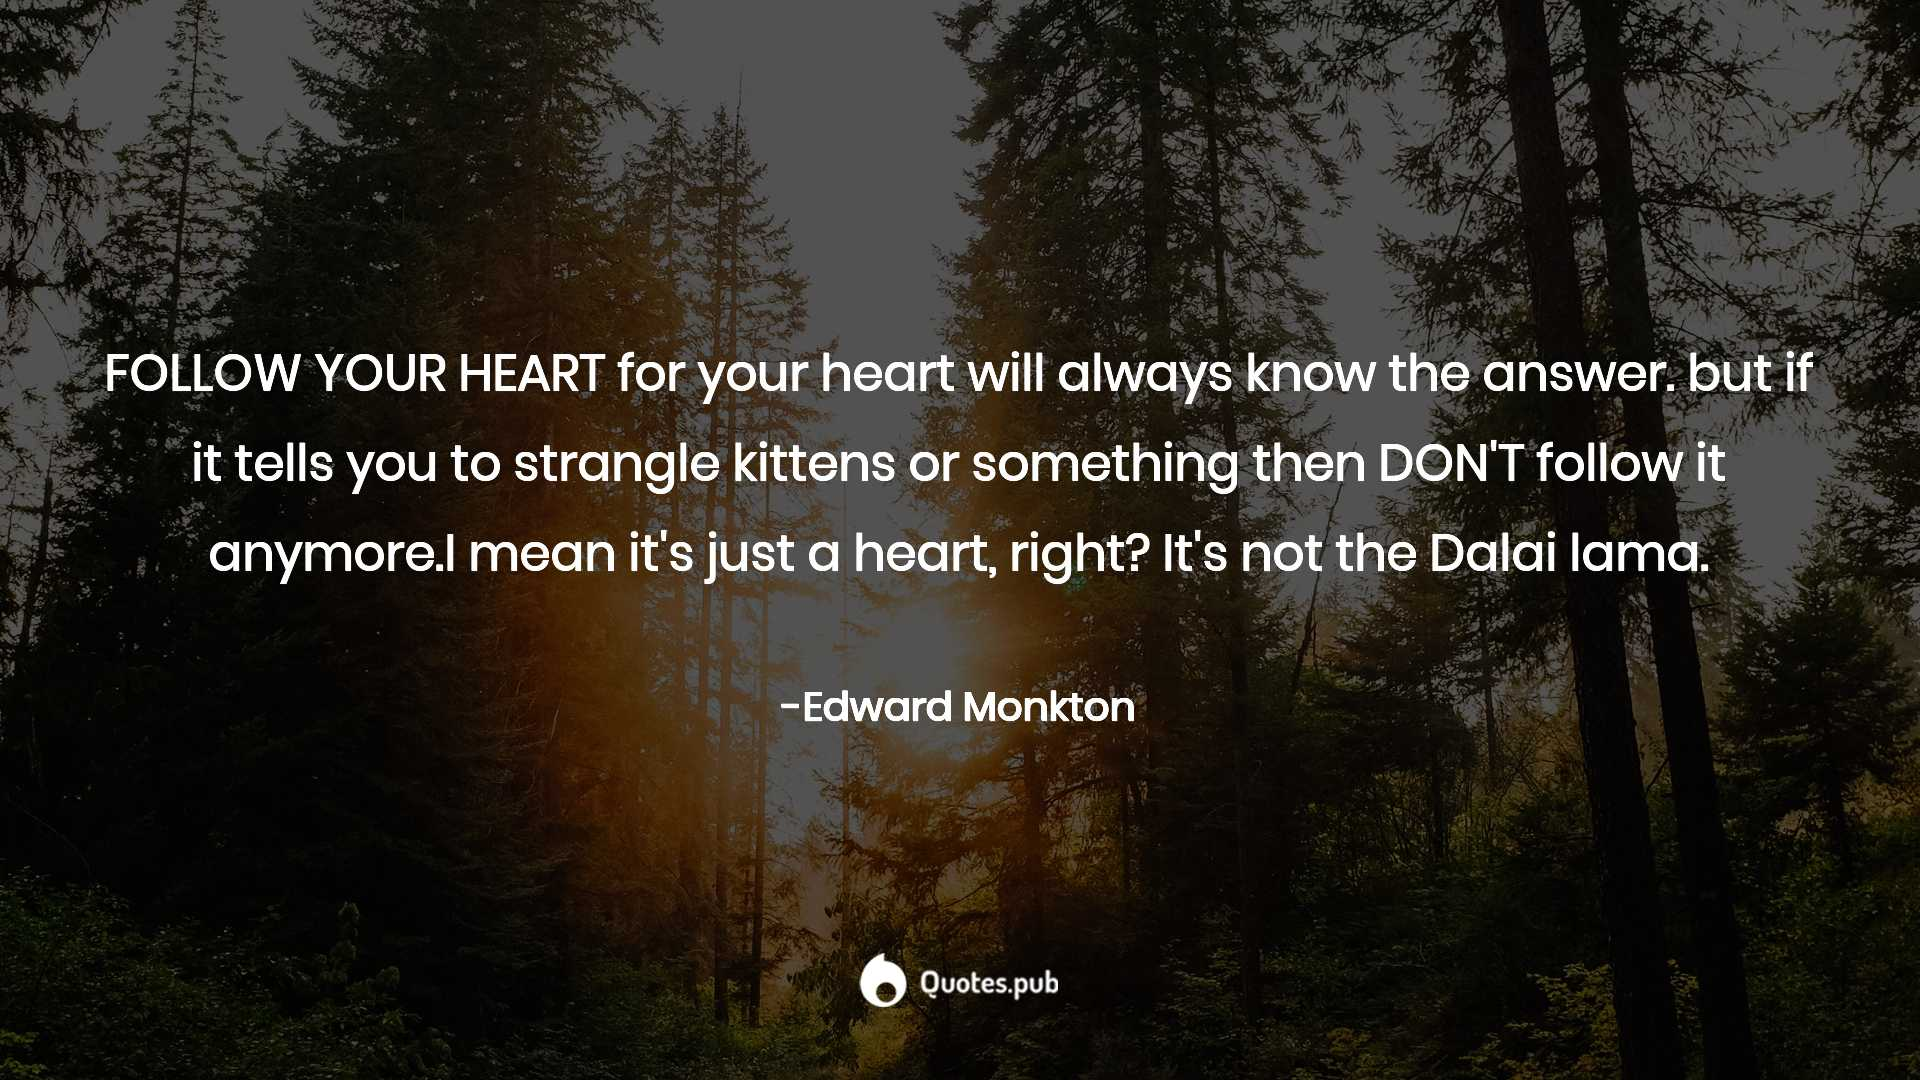 Follow Your Heartfor Your Heart Will Edward Monkton Quotespub